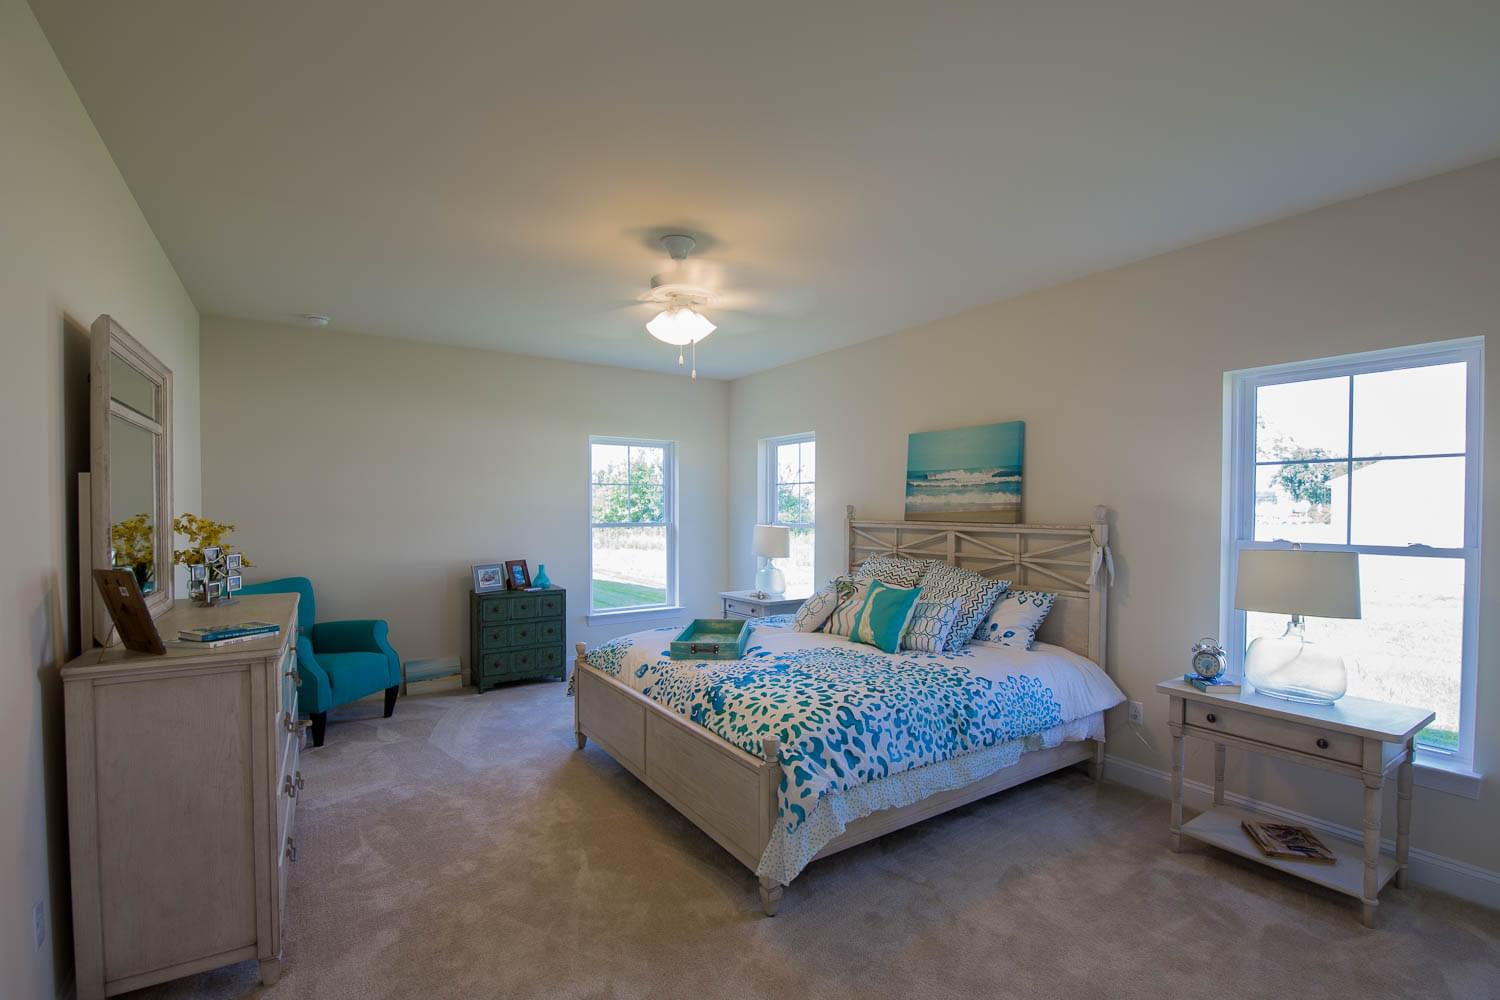 Furniture Village Junction 9 new homes for sale in georgetown, de. village of cinderberry from